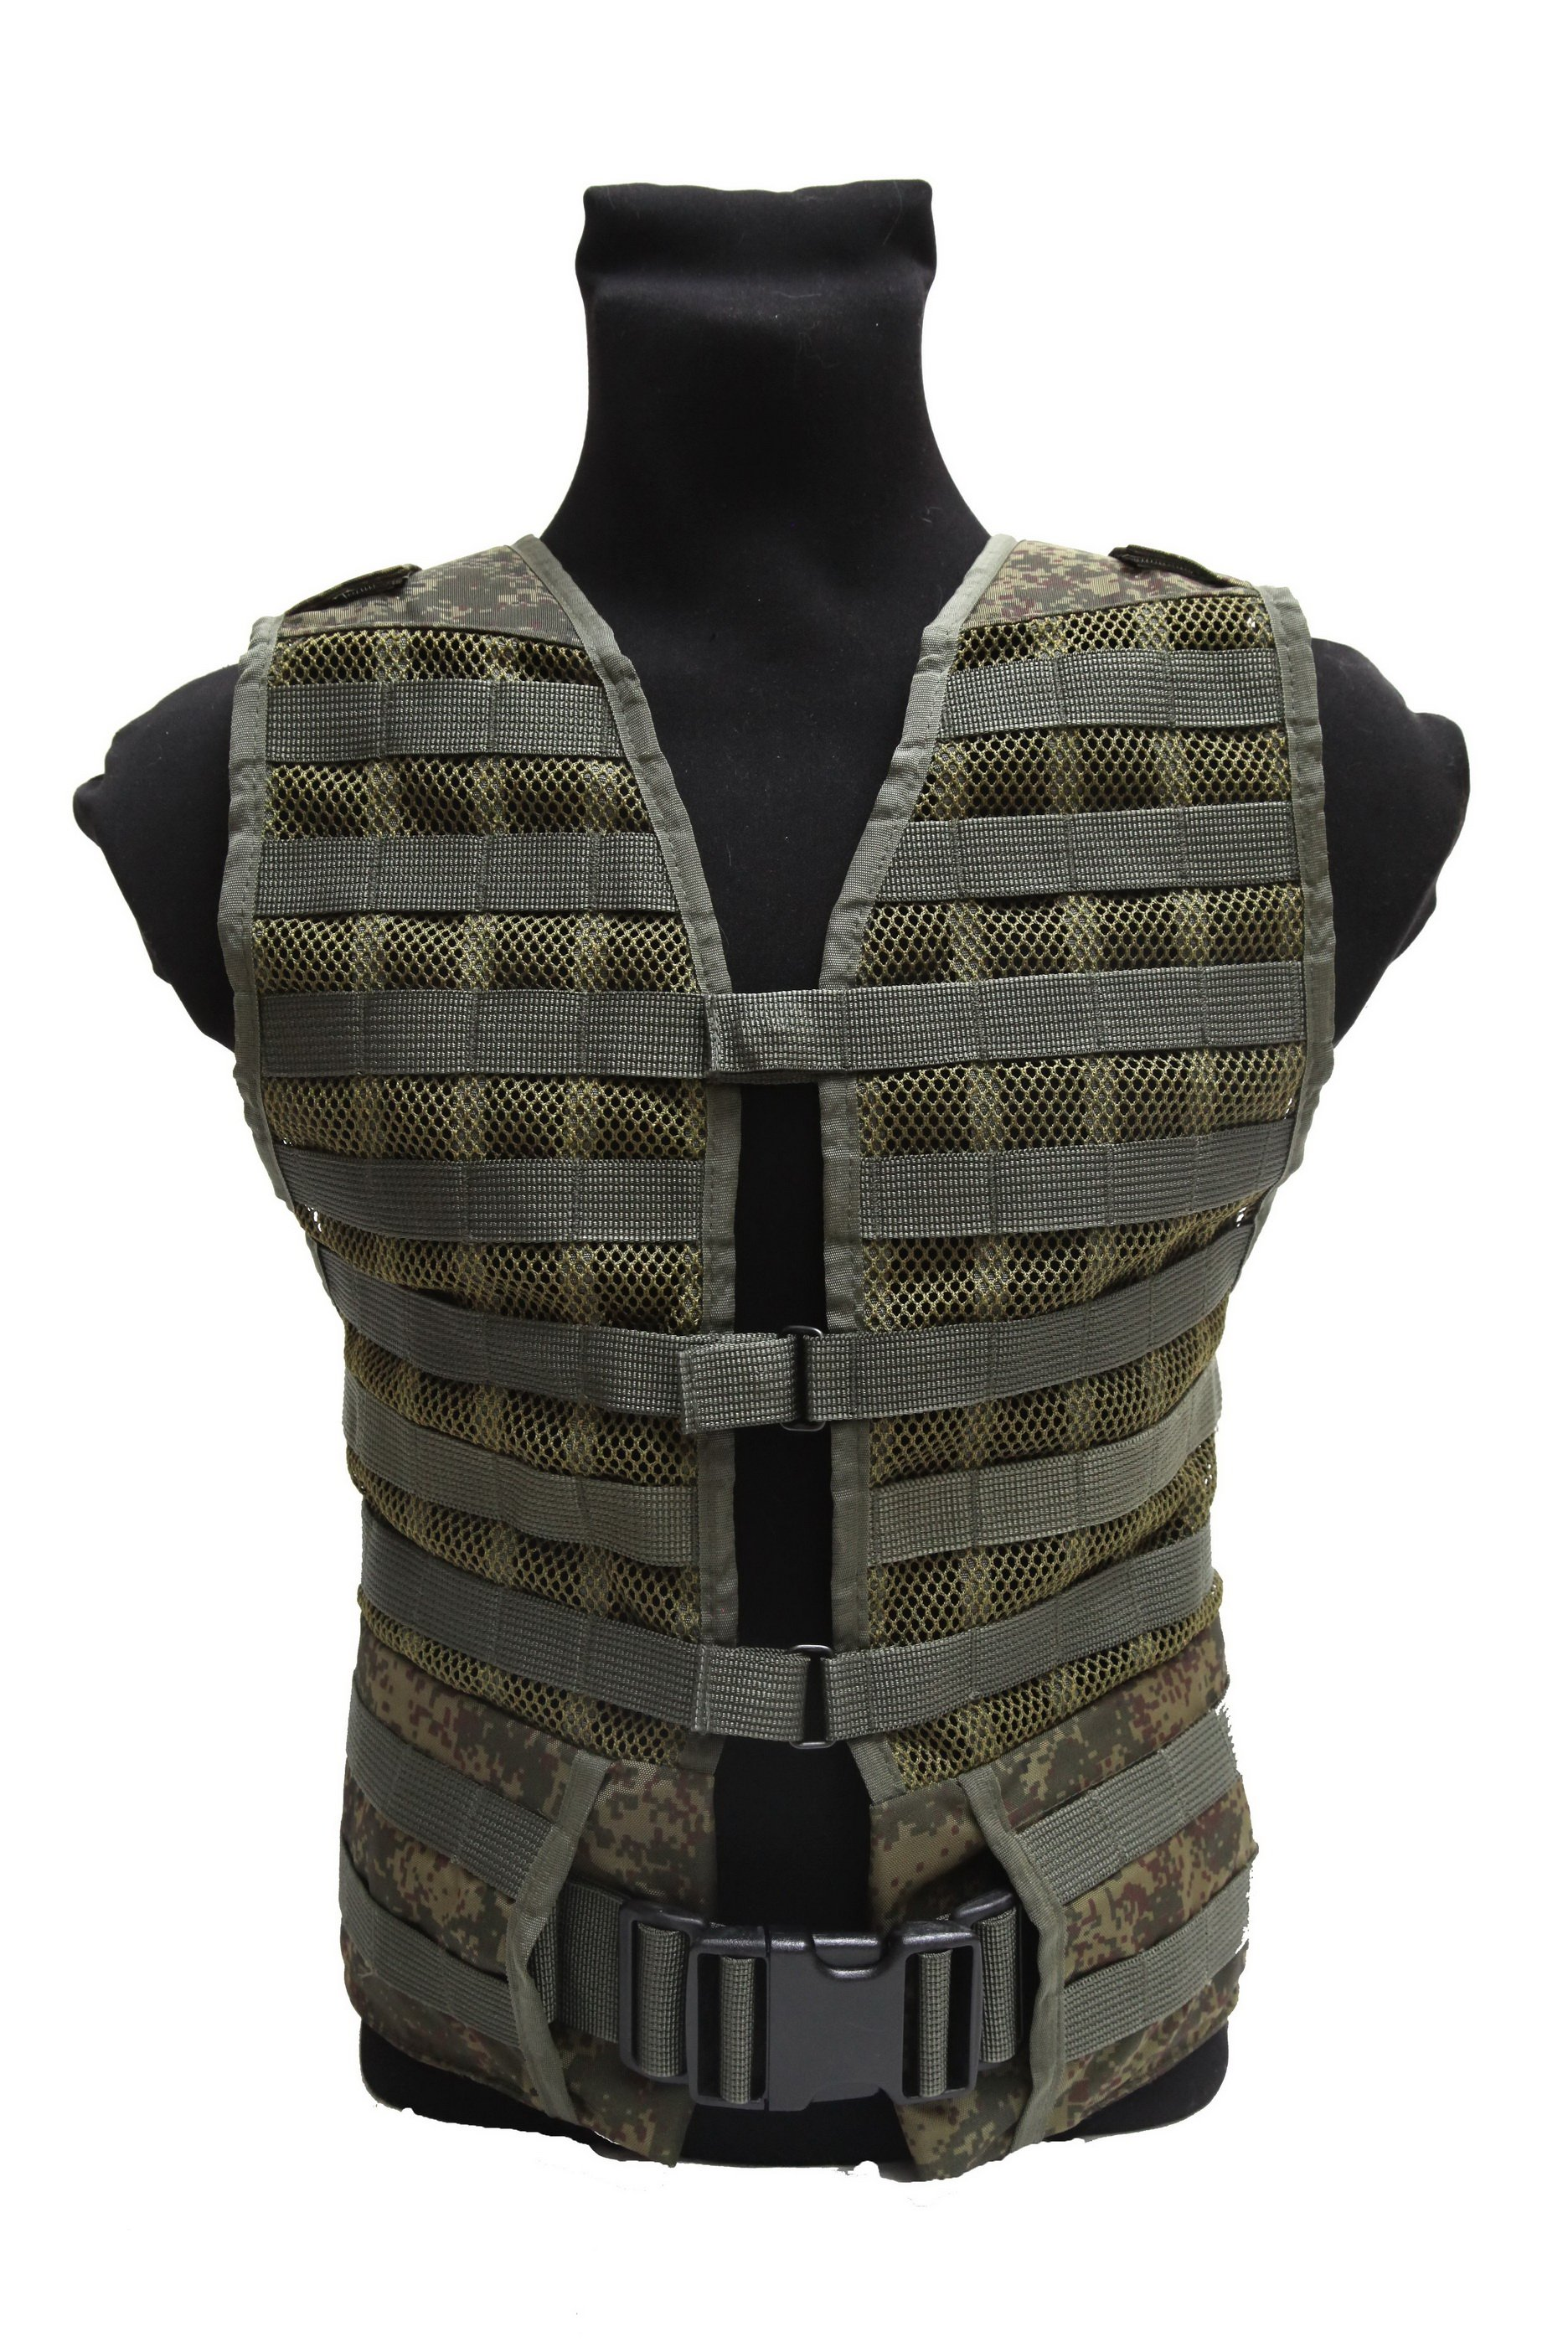 Armor carriers and vests